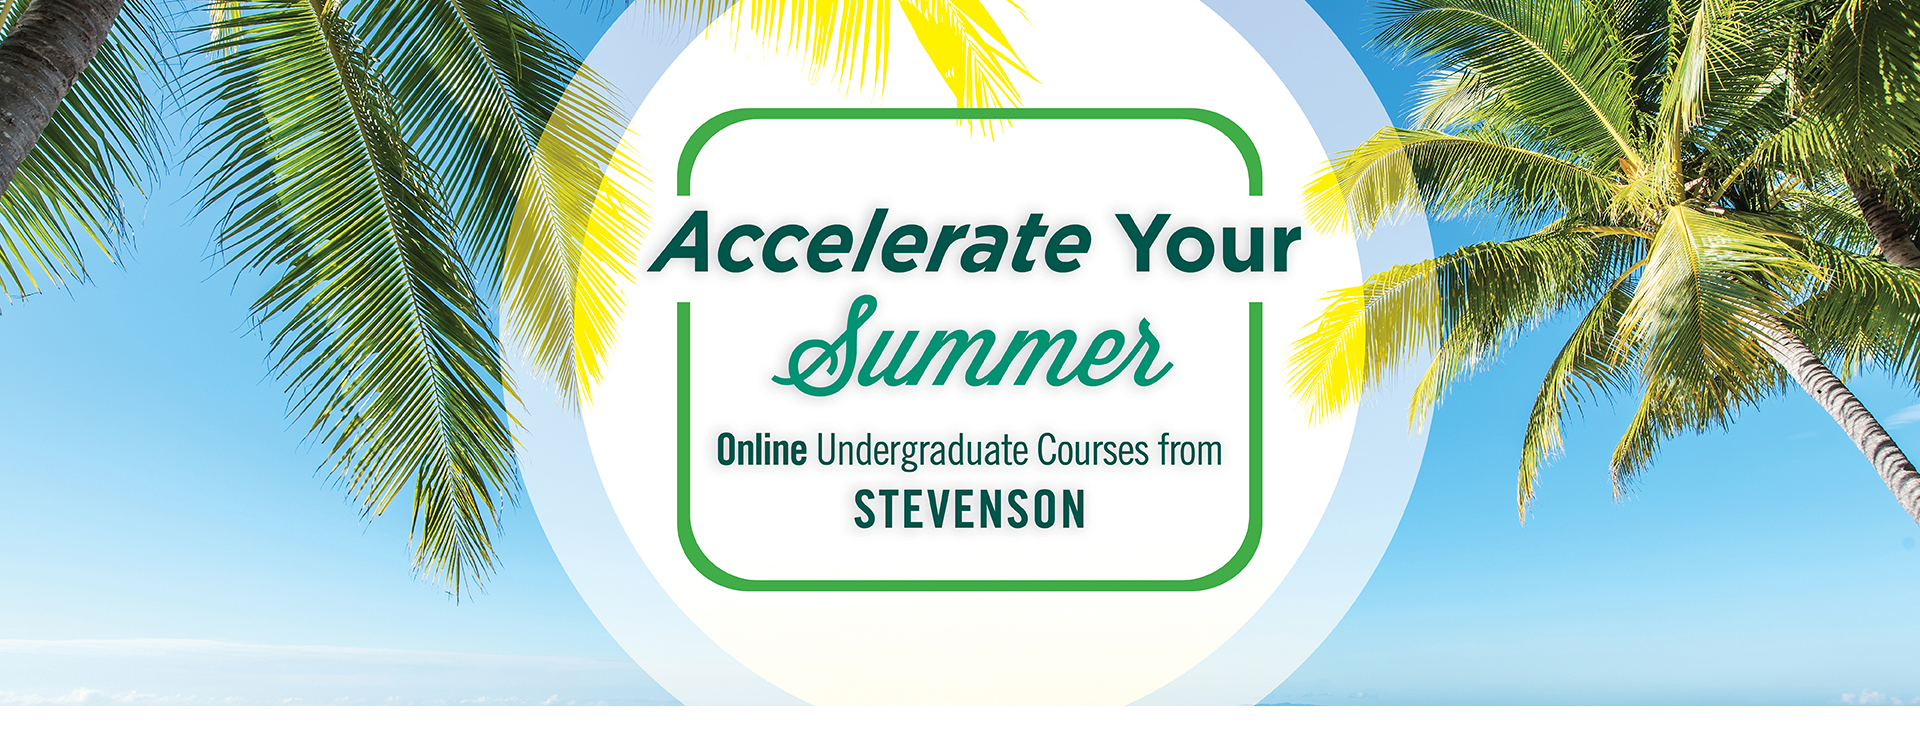 Accelerate Your Summer